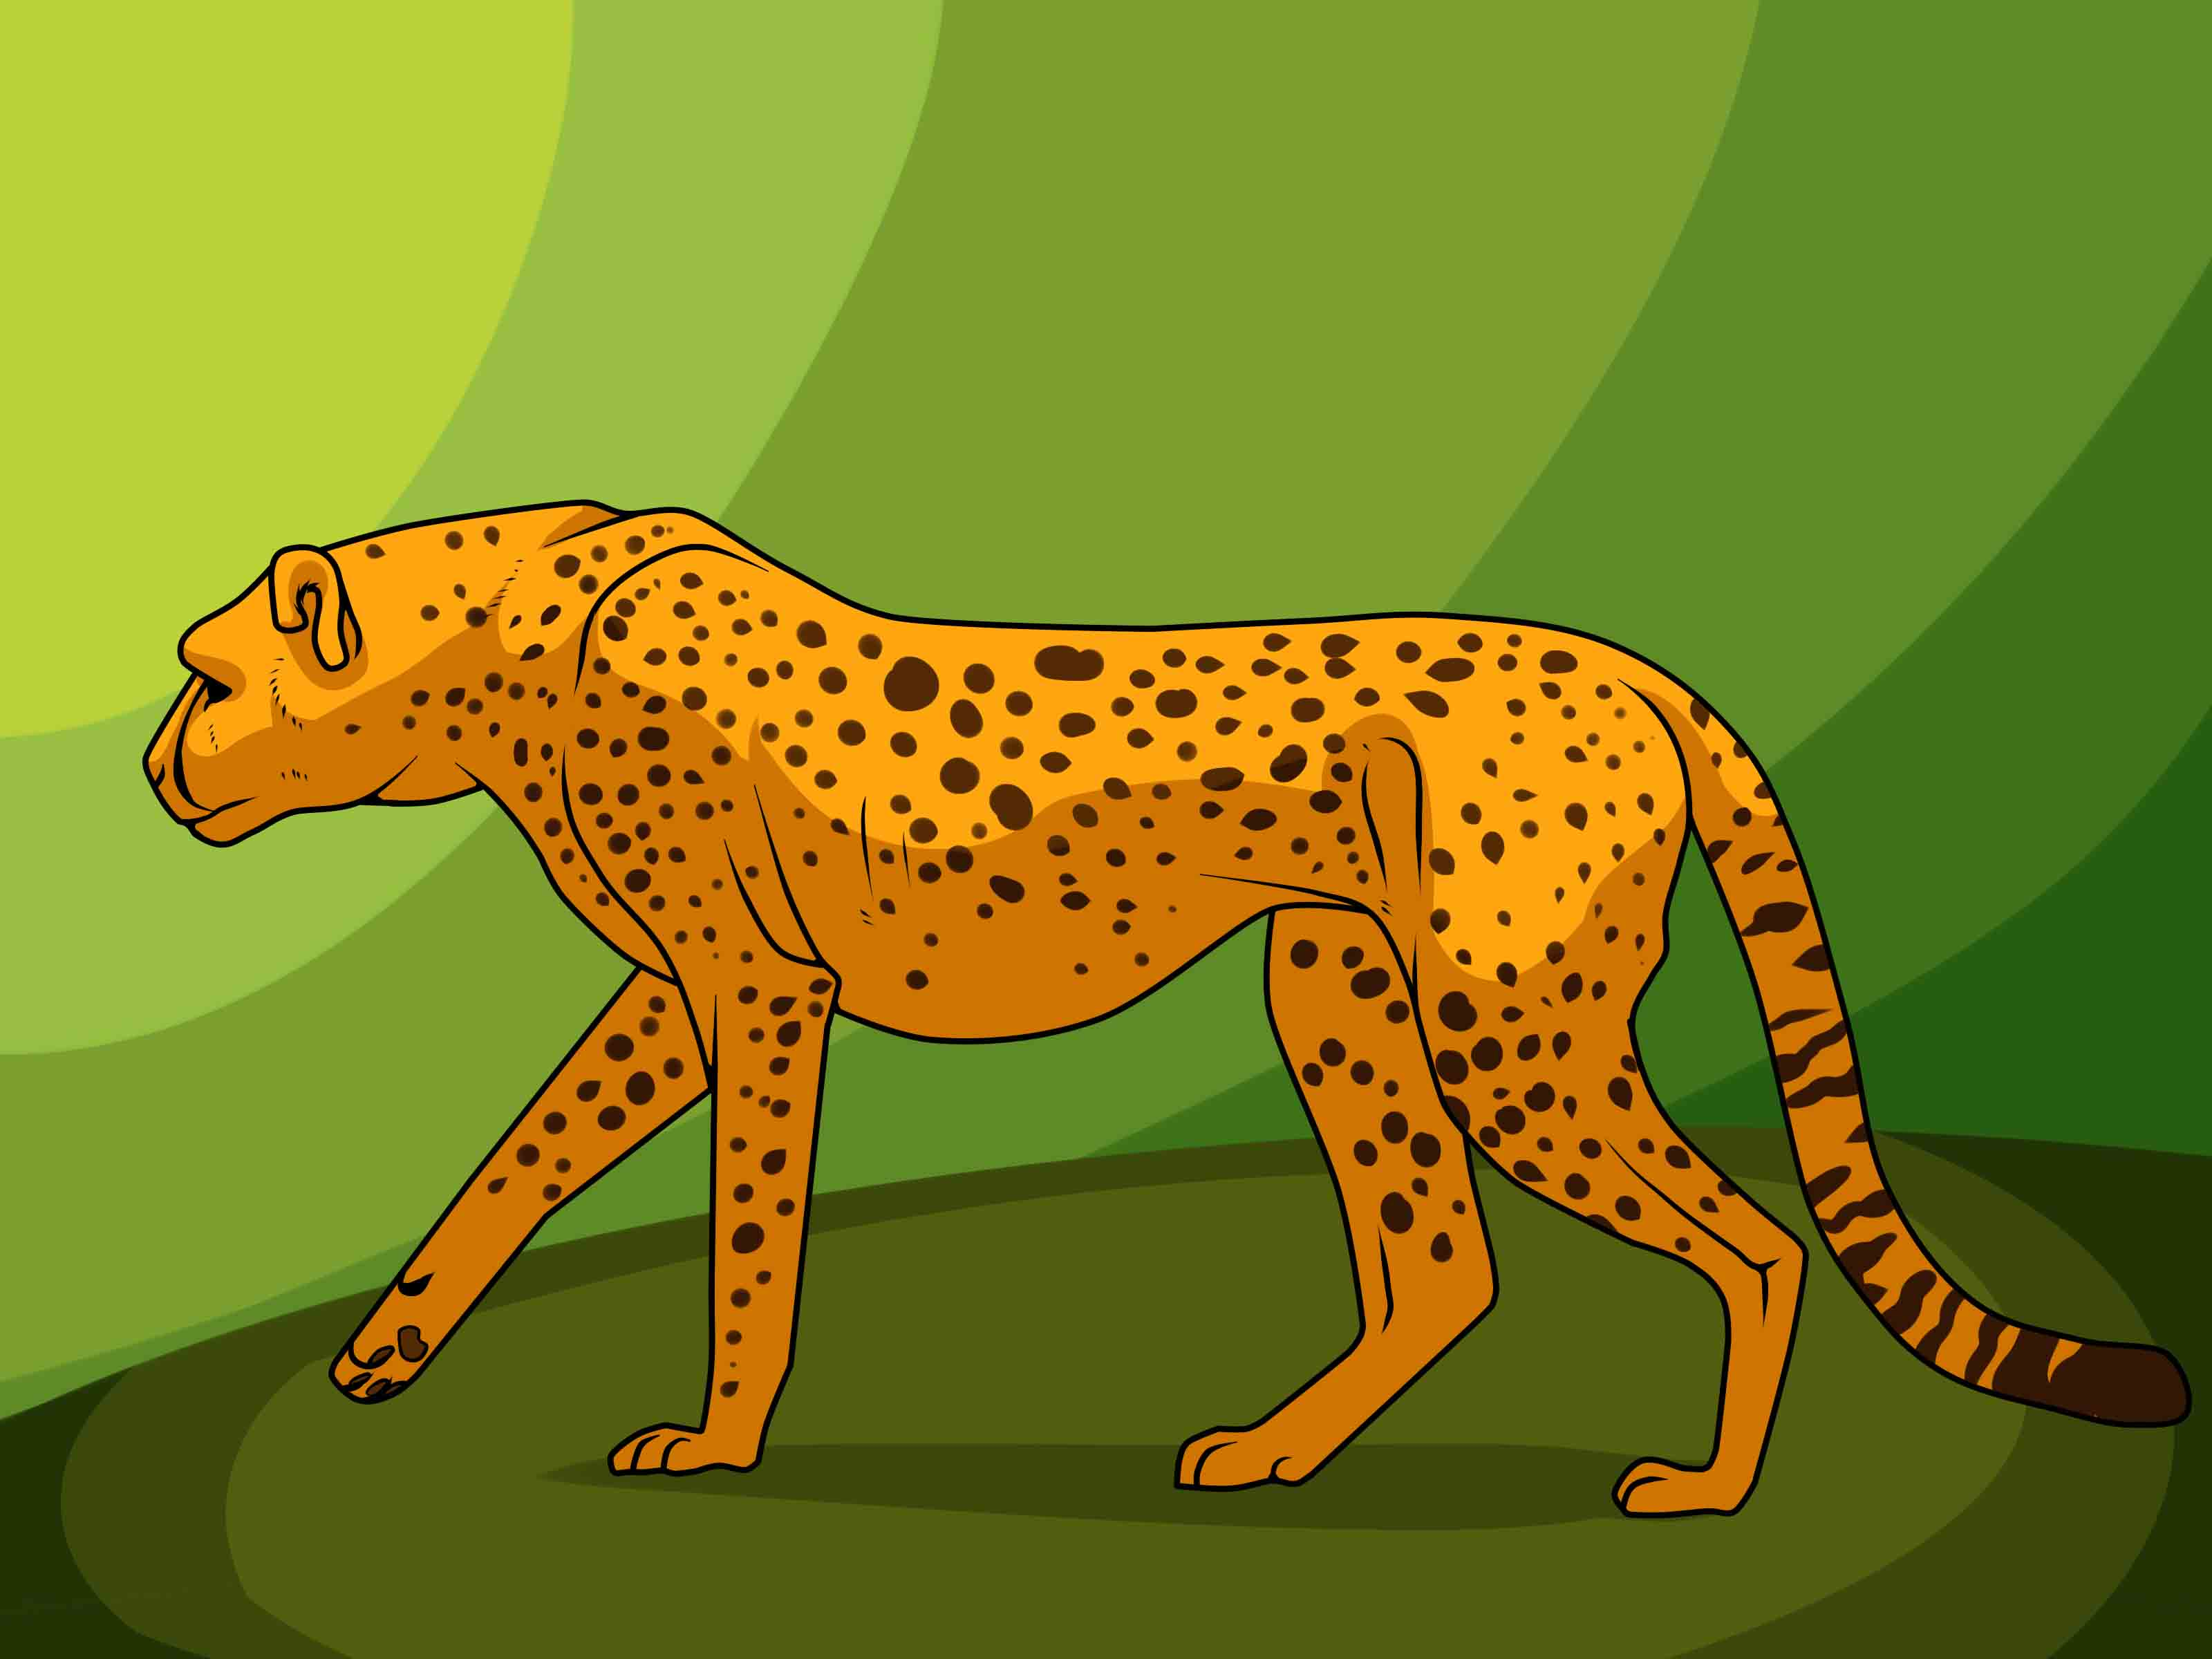 Co color to draw - How To Draw A Cheetah 13 Steps With Pictures Wikihow